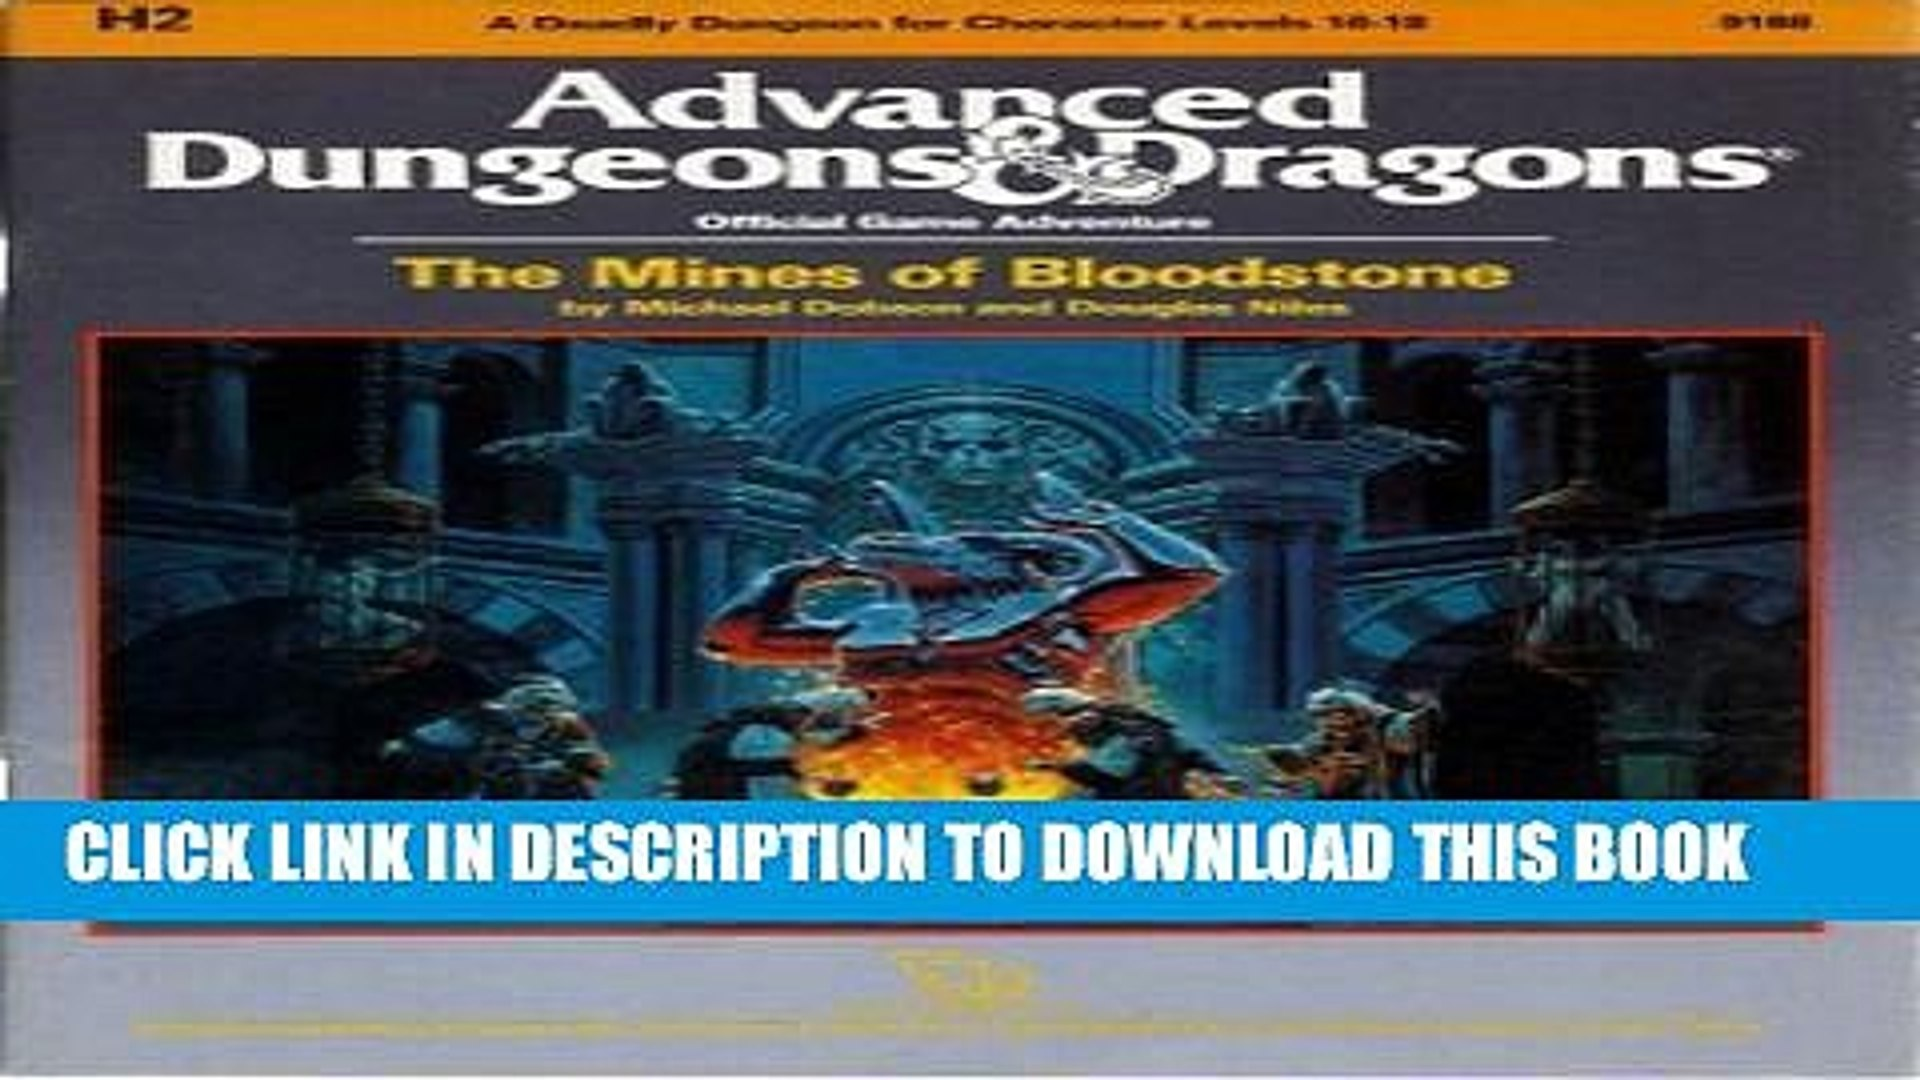 [New] The Mines of Bloodstone (AD D Fantasy Roleplaying, Module H2 ) Exclusive Full Ebook